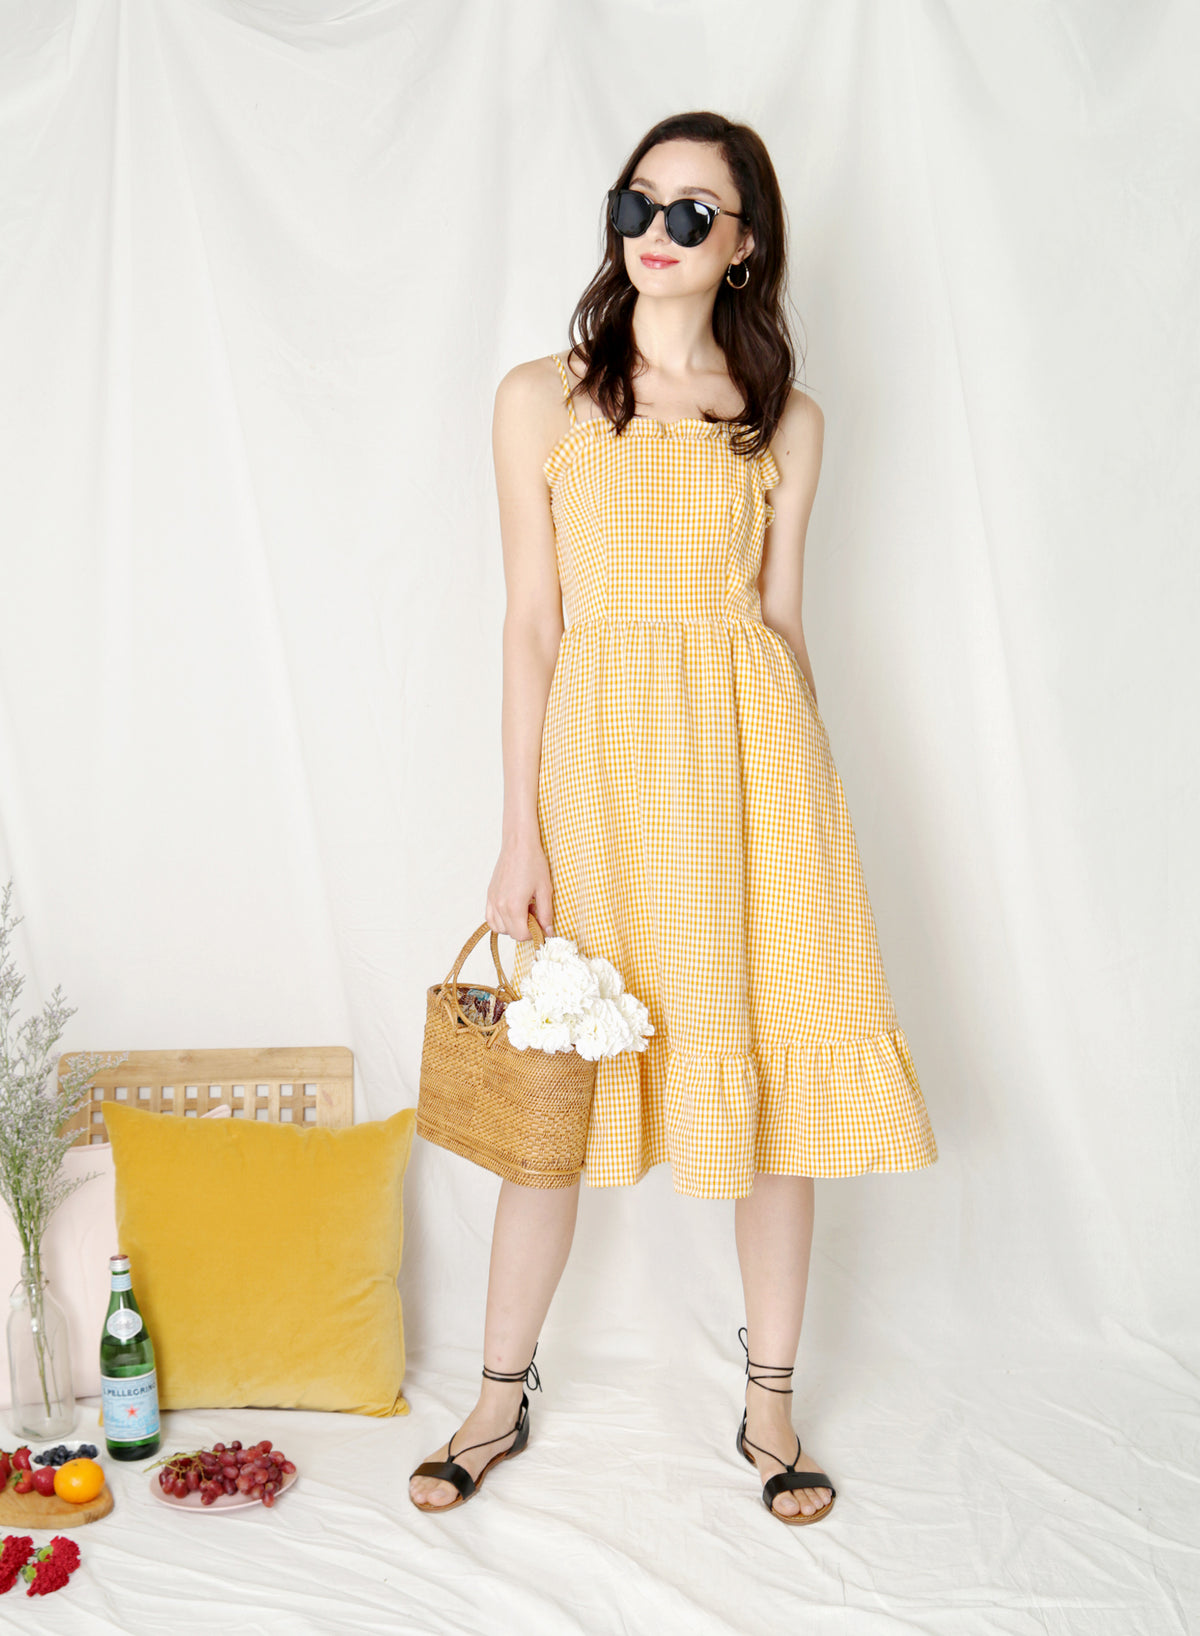 Harmony Ribbon Tie Back Dress (Yellow Gingham) at $ 43.50 only sold at And Well Dressed Online Fashion Store Singapore